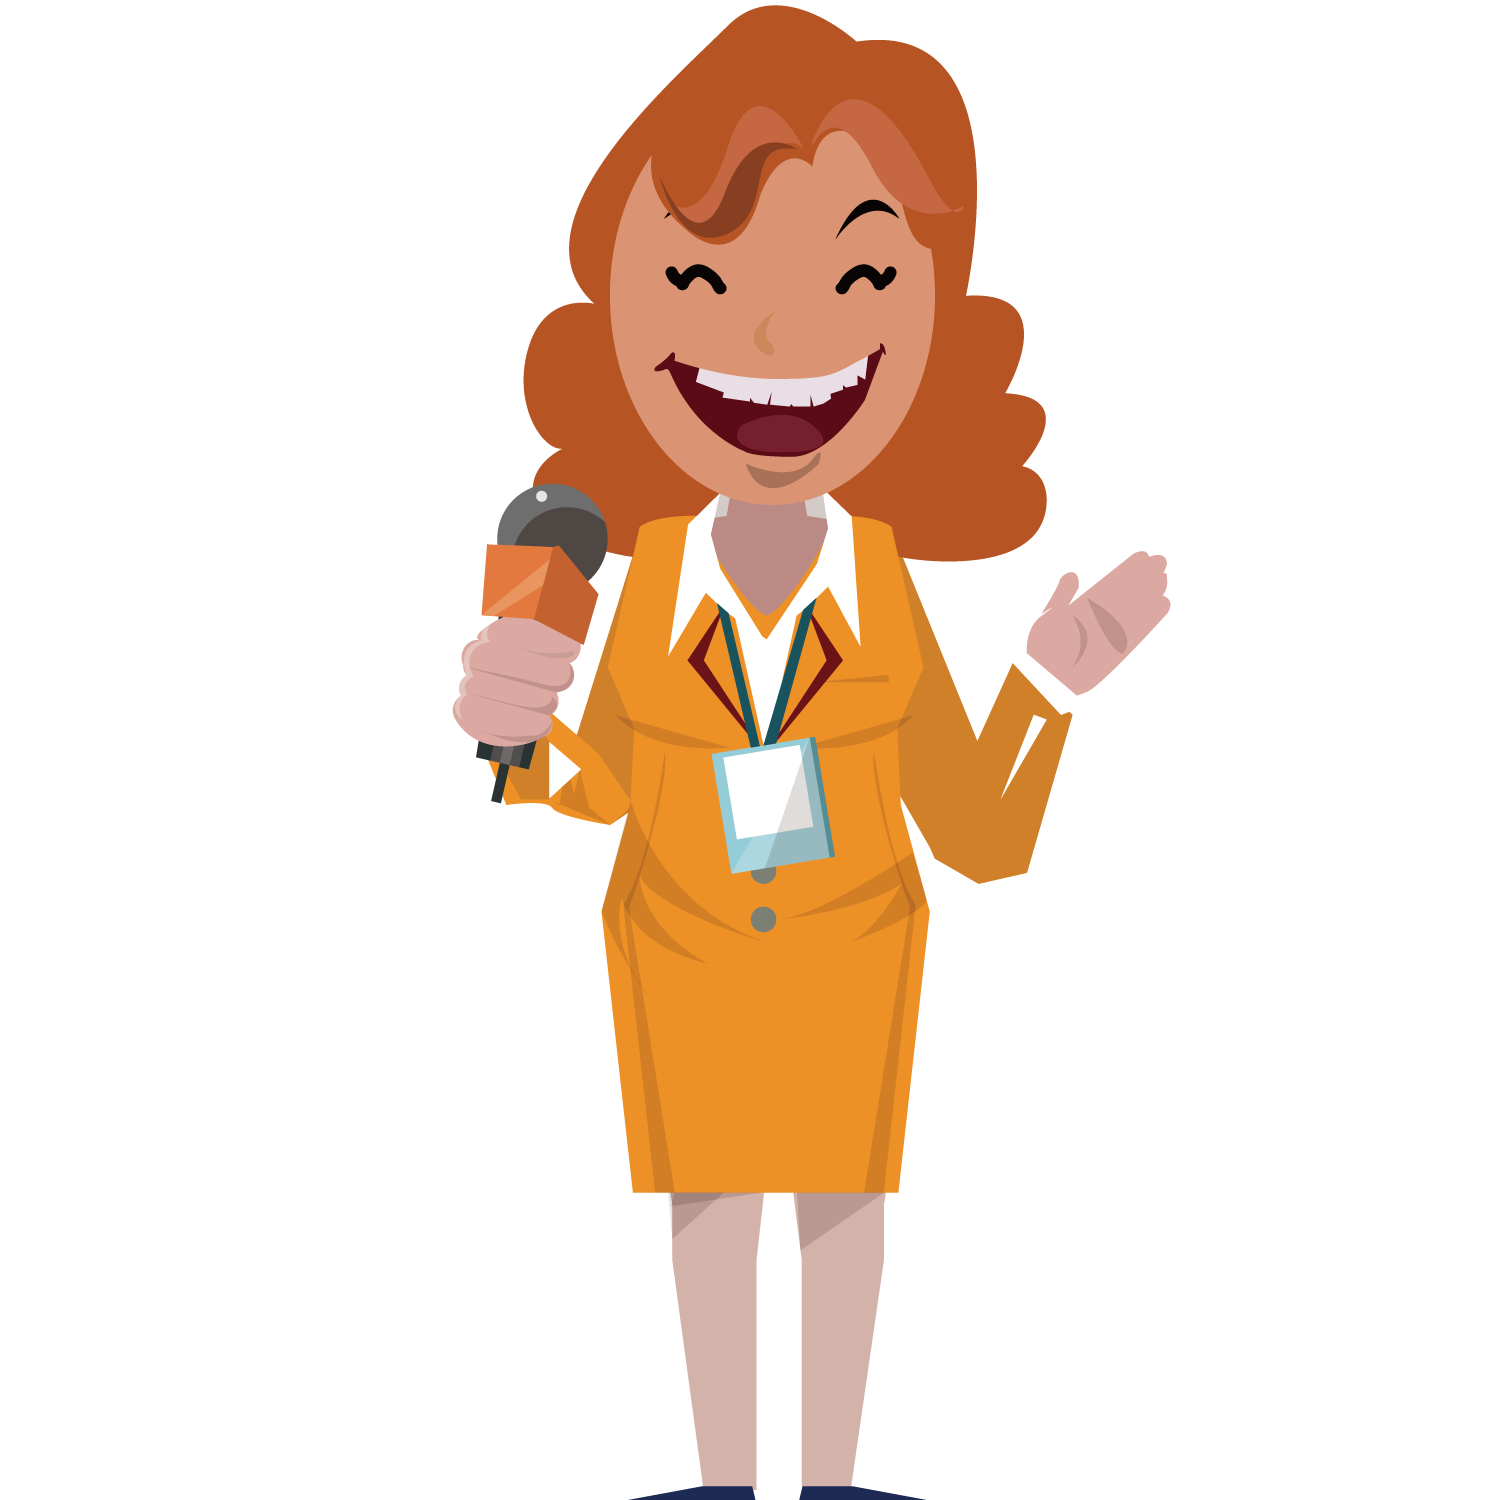 Microphone clipart reporter microphone. Journalist journalism news presenter